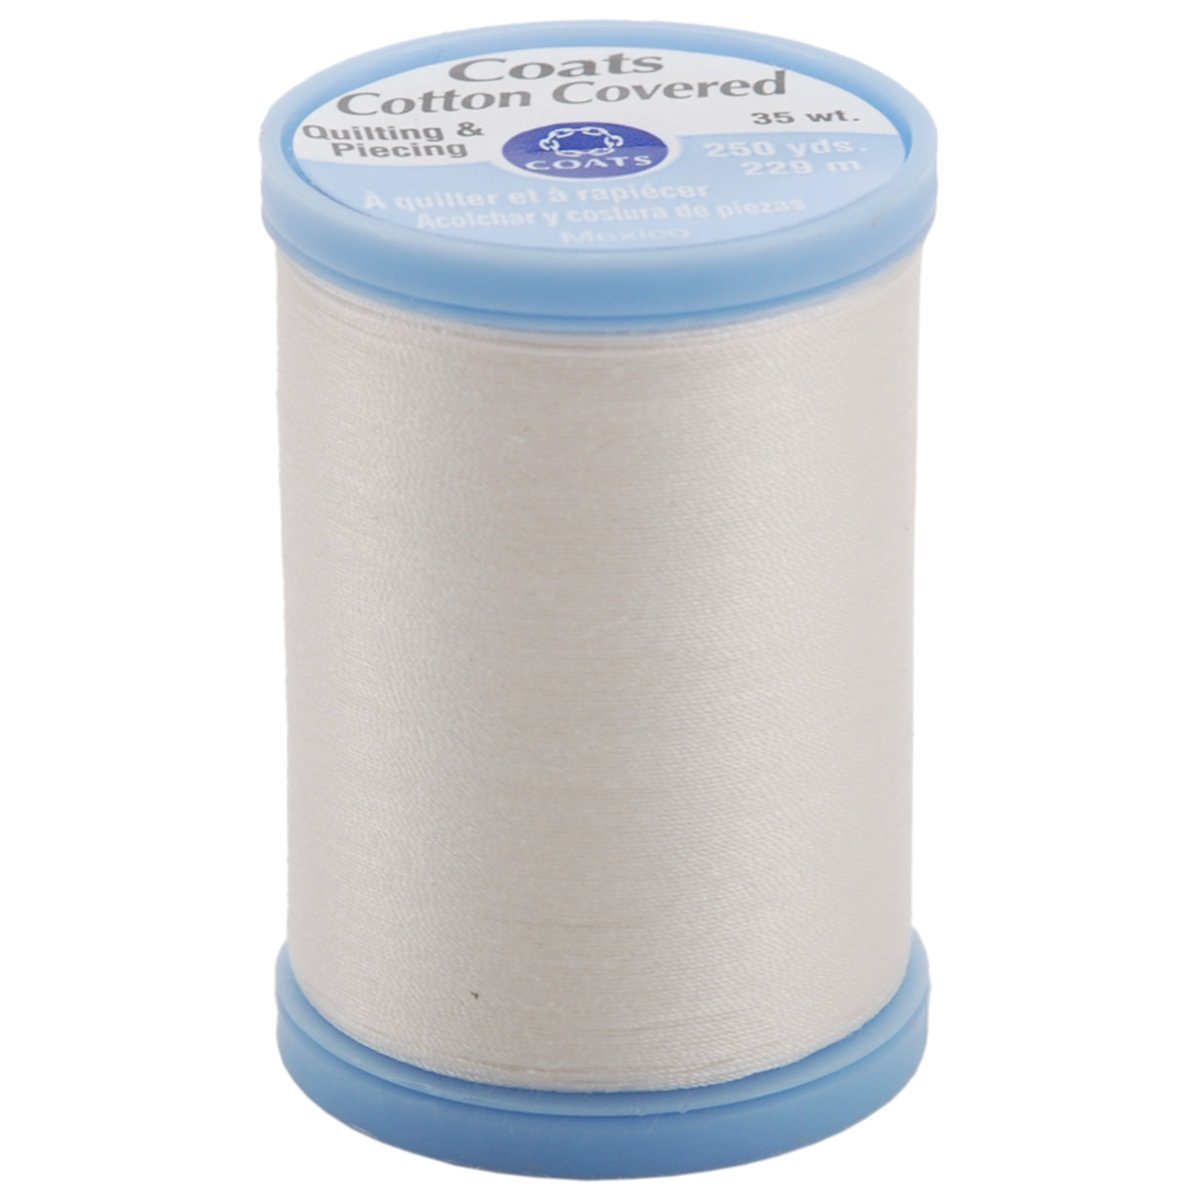 Cotton Covered Quilting & Piecing Thread 250yd-Winter White Coats S925-150